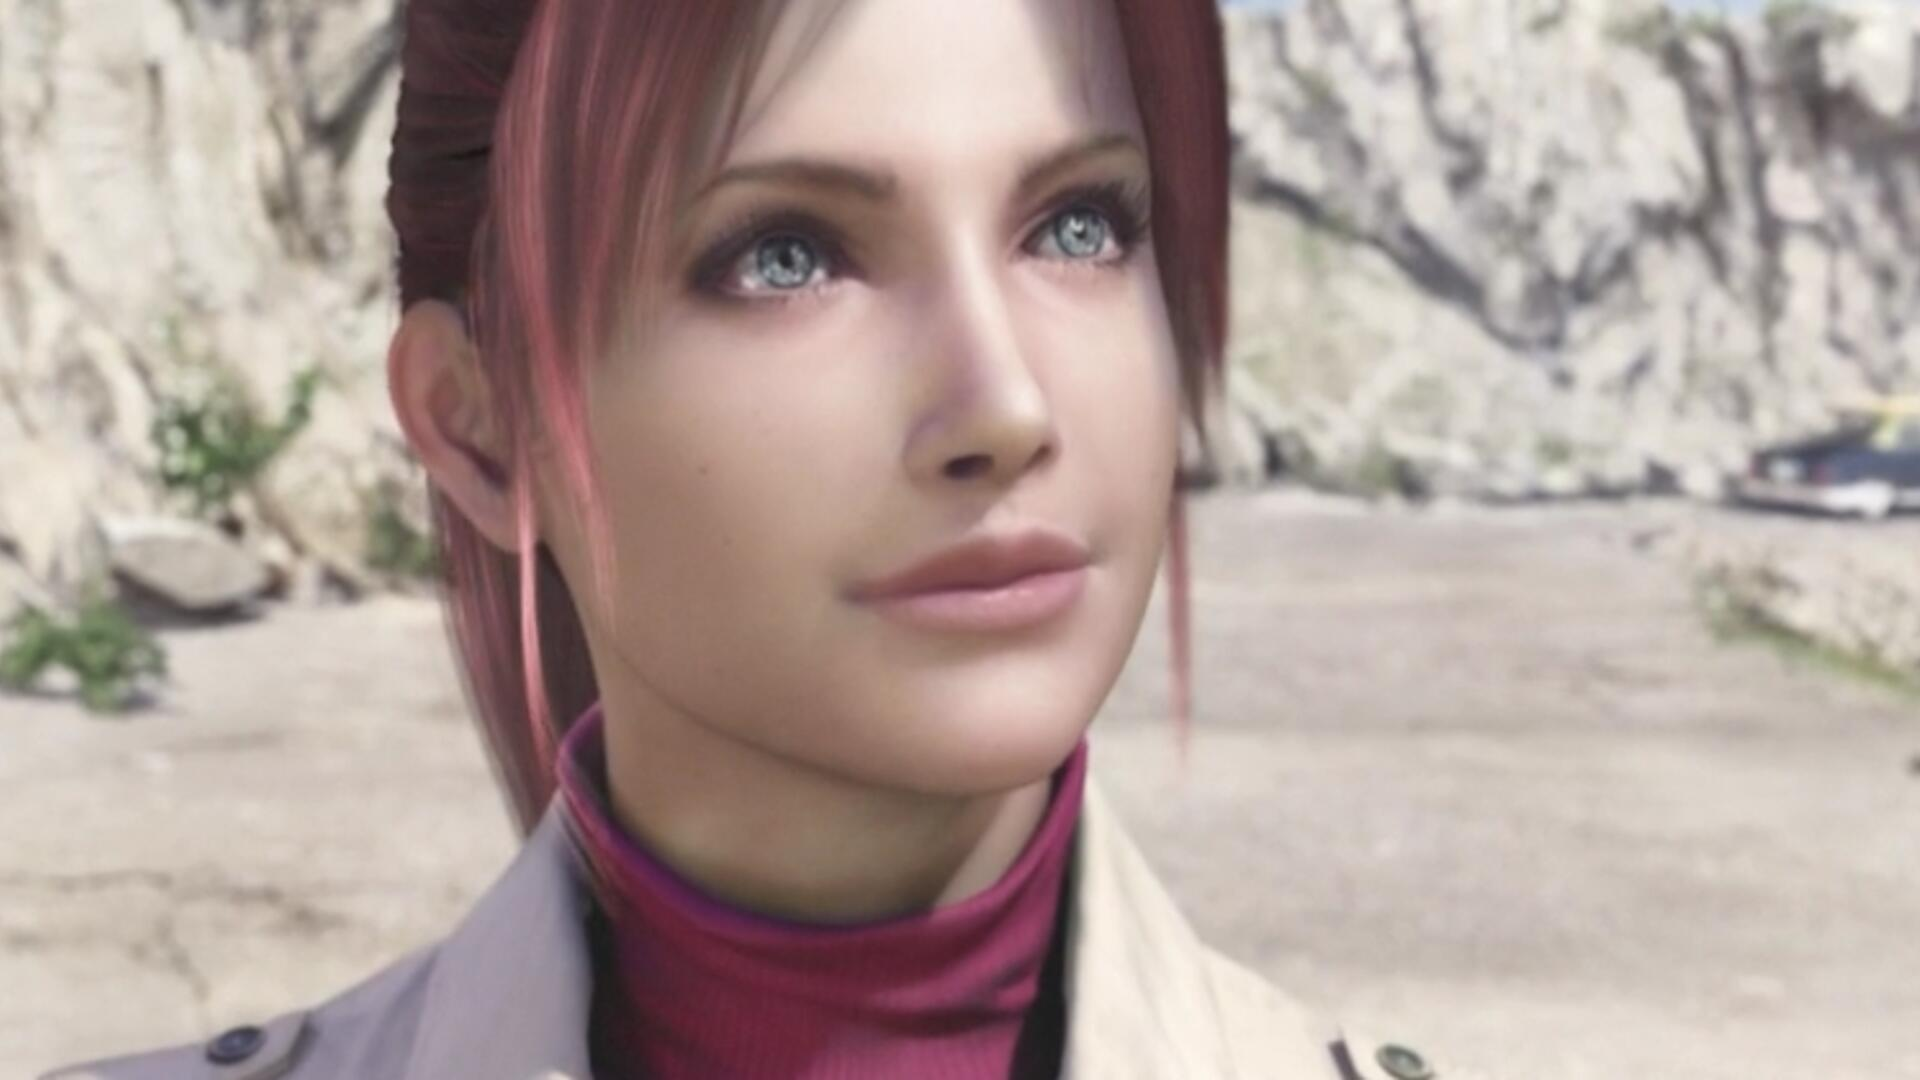 You Won't Hear the Original Voice Actors for Claire Redfield or Leon Kennedy in the Resident Evil 2 Remake